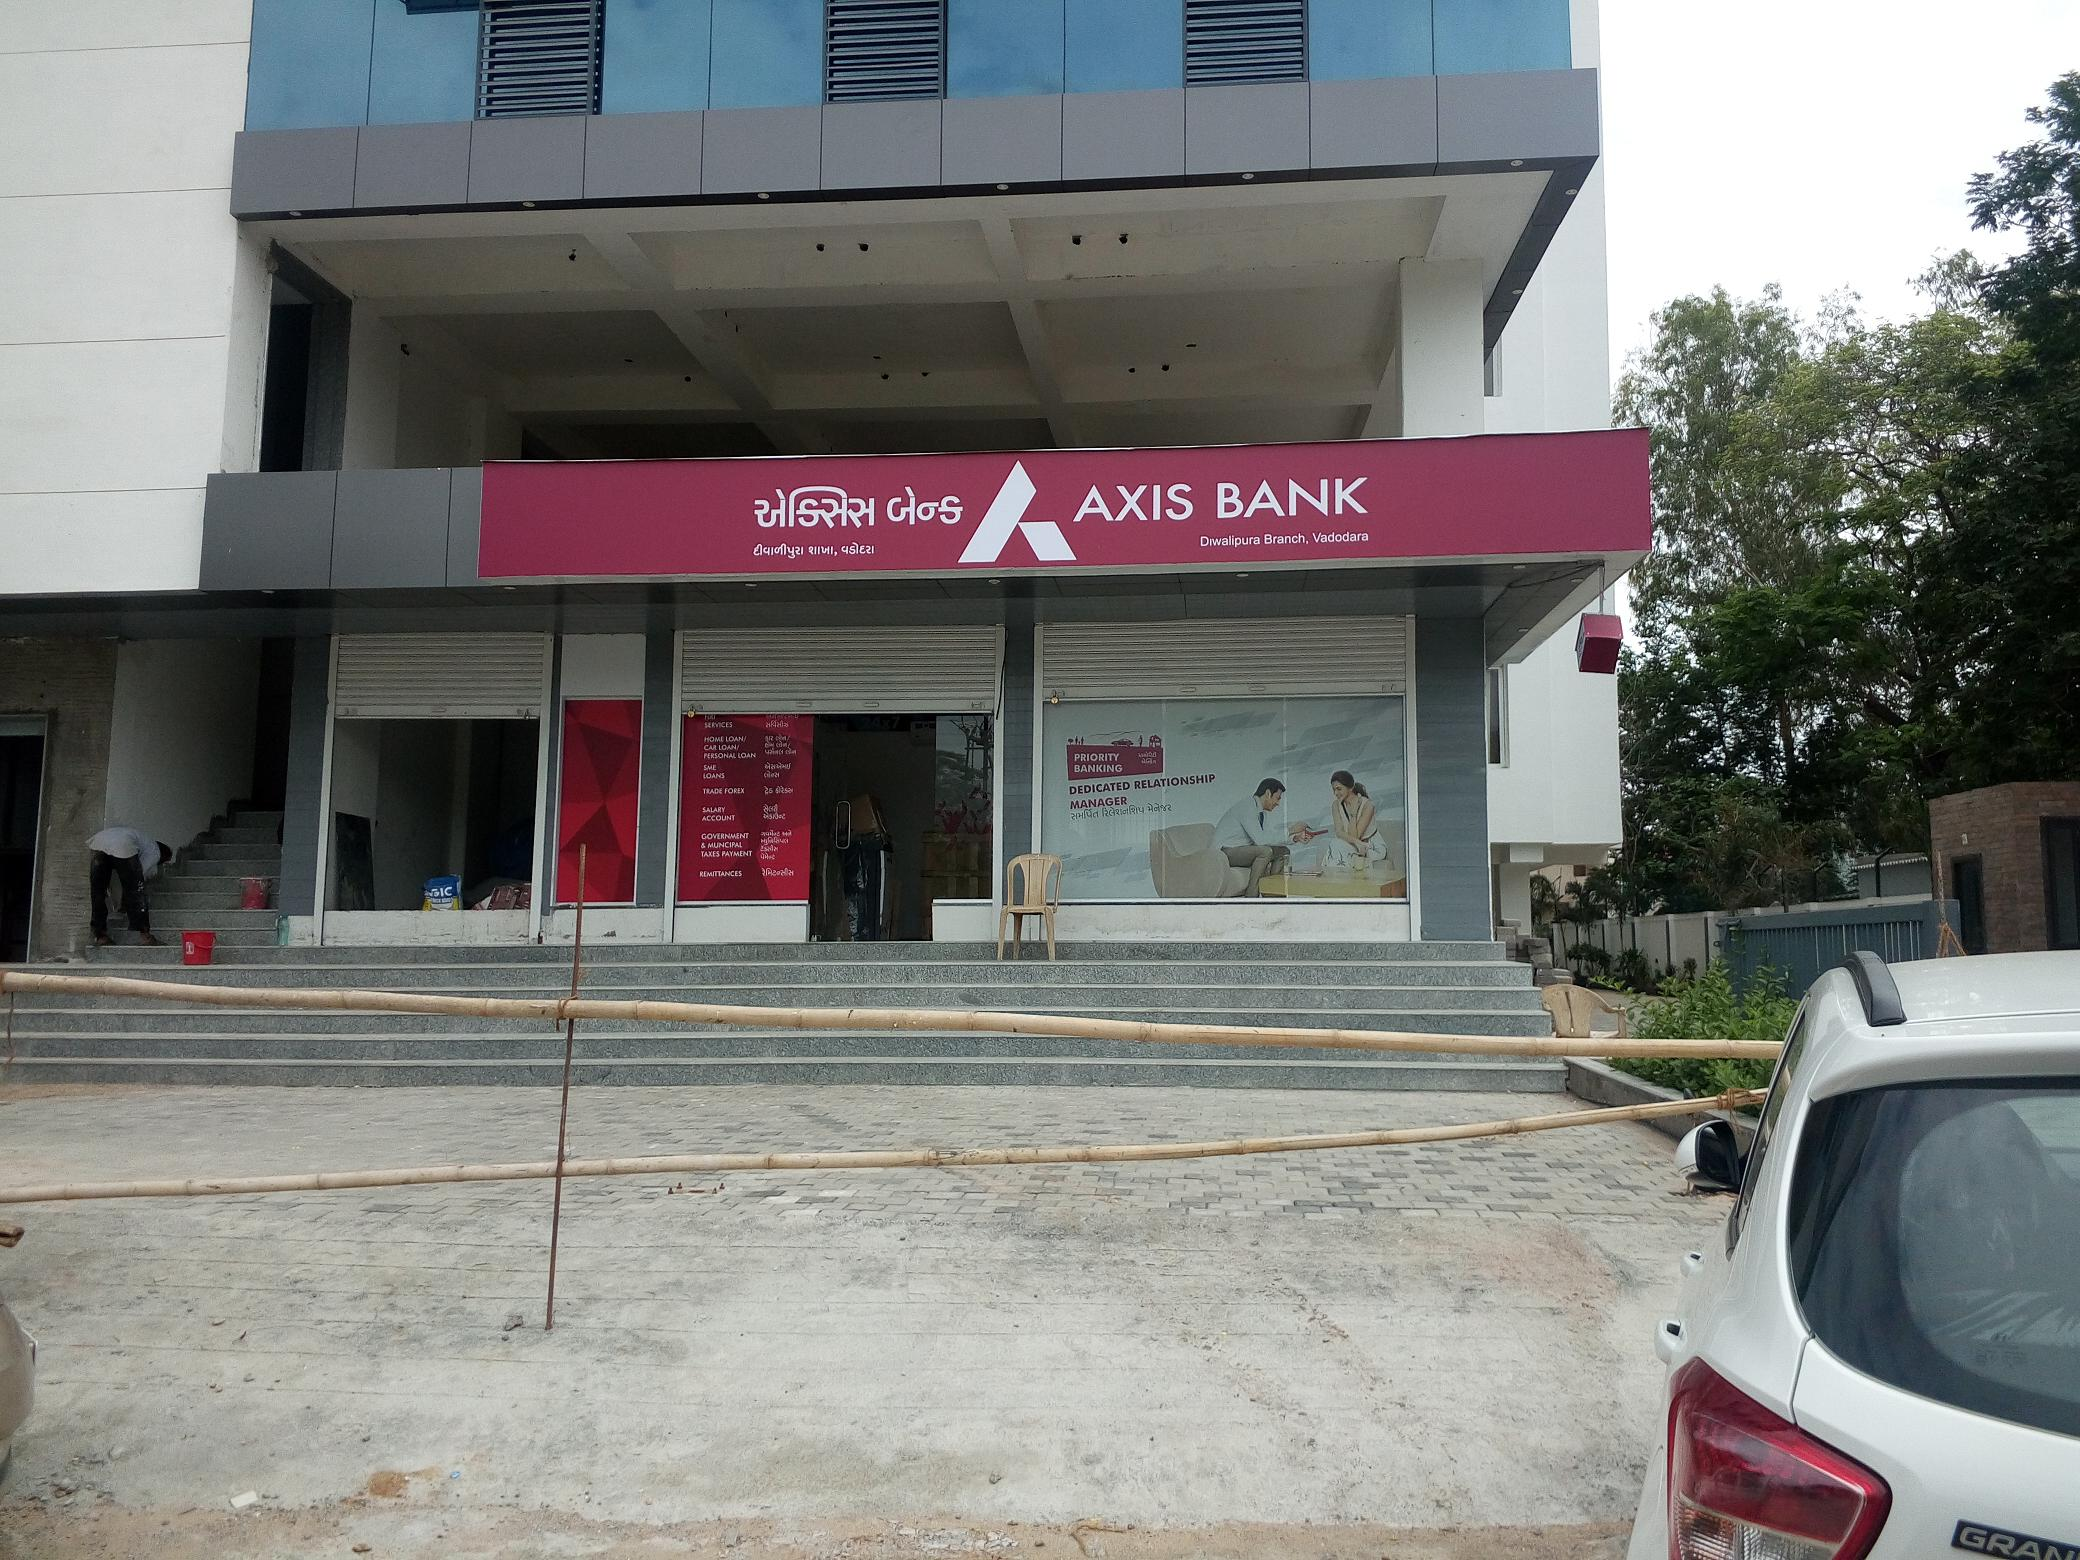 Axis Bank Diwalipura Branch at RK Plaza having 6 steps and inaccessible for all kind of Divyanjan